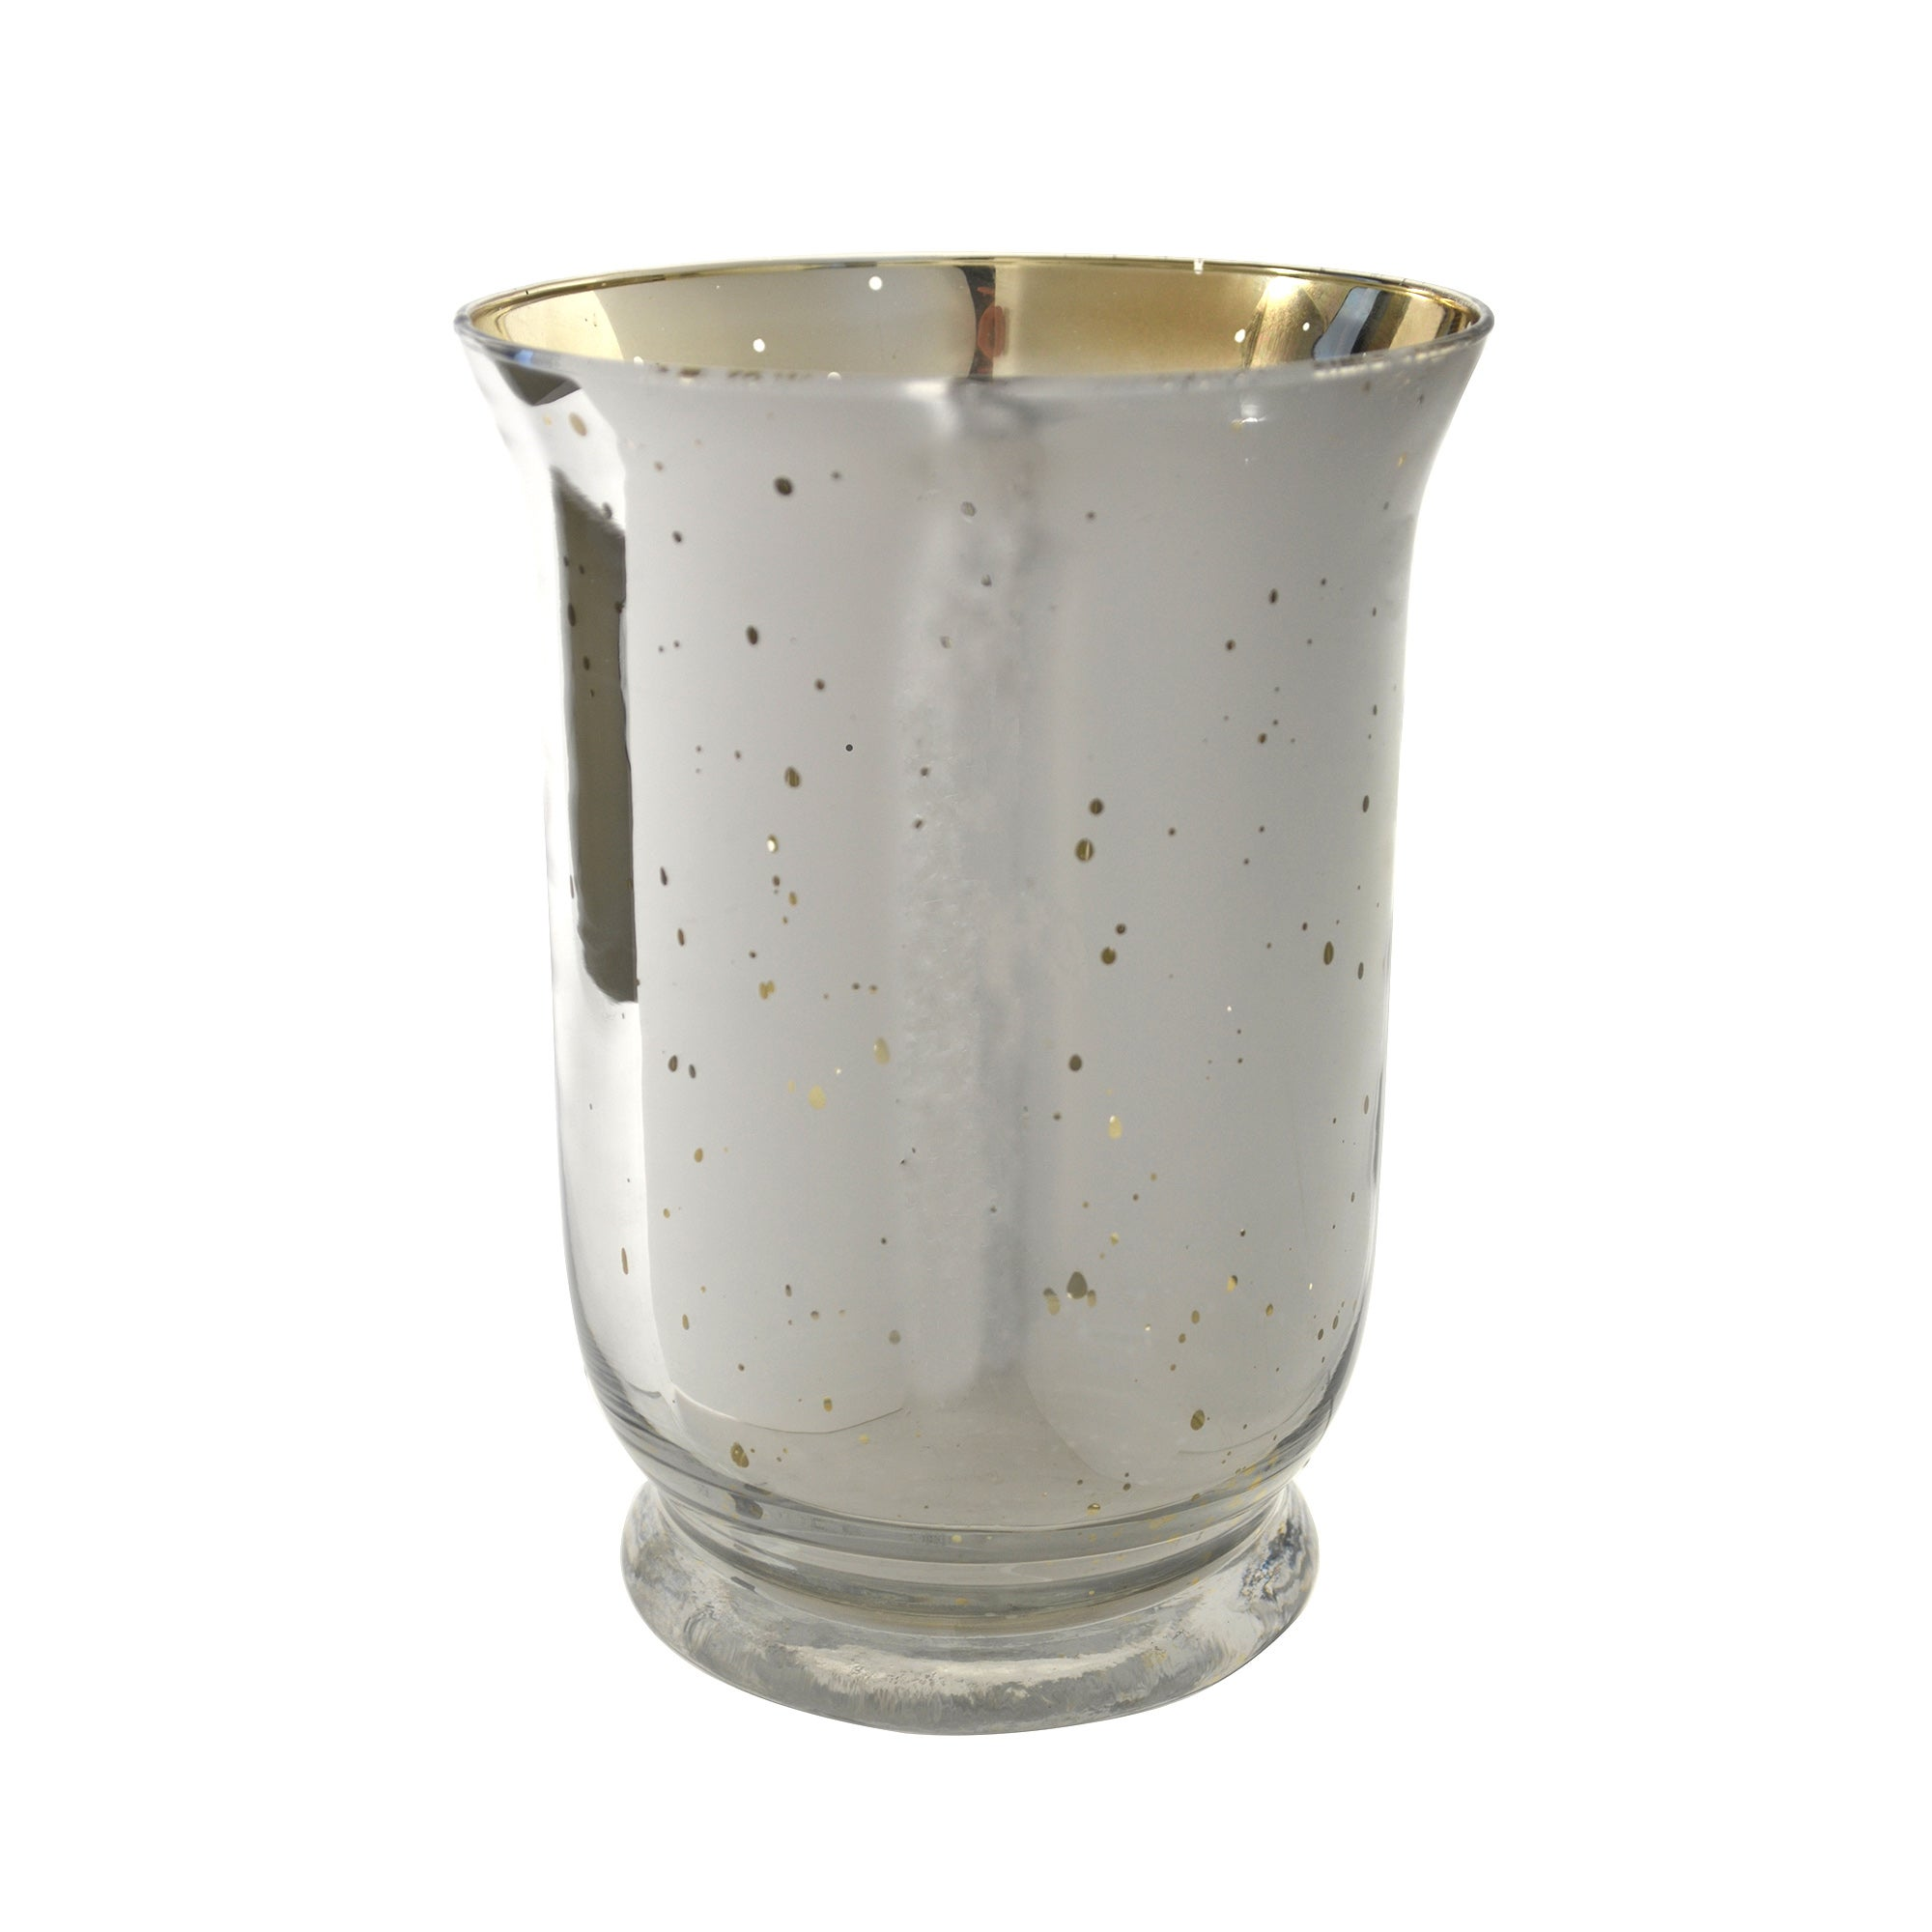 Photo of Mercury glass hurricane vase champagne brown